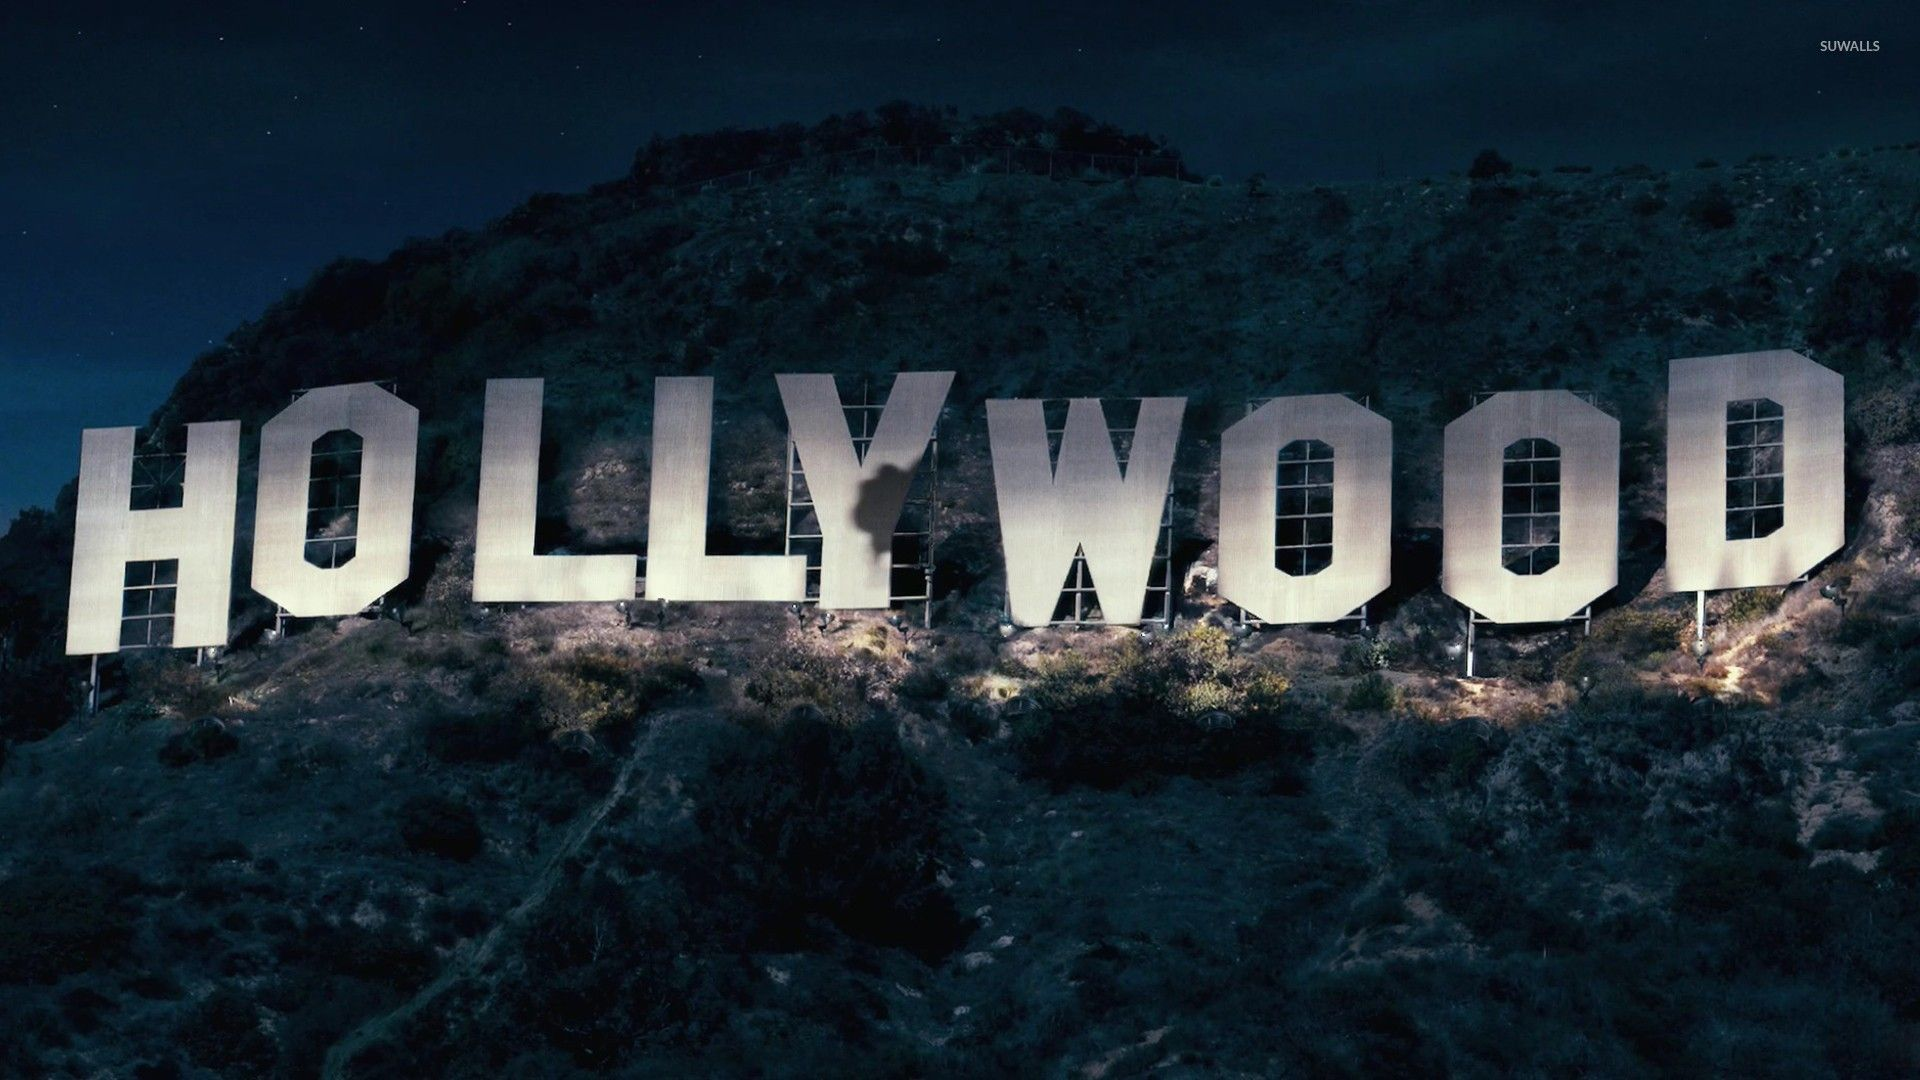 Hollywood Wallpapers   Top Hollywood Backgrounds 1920x1080